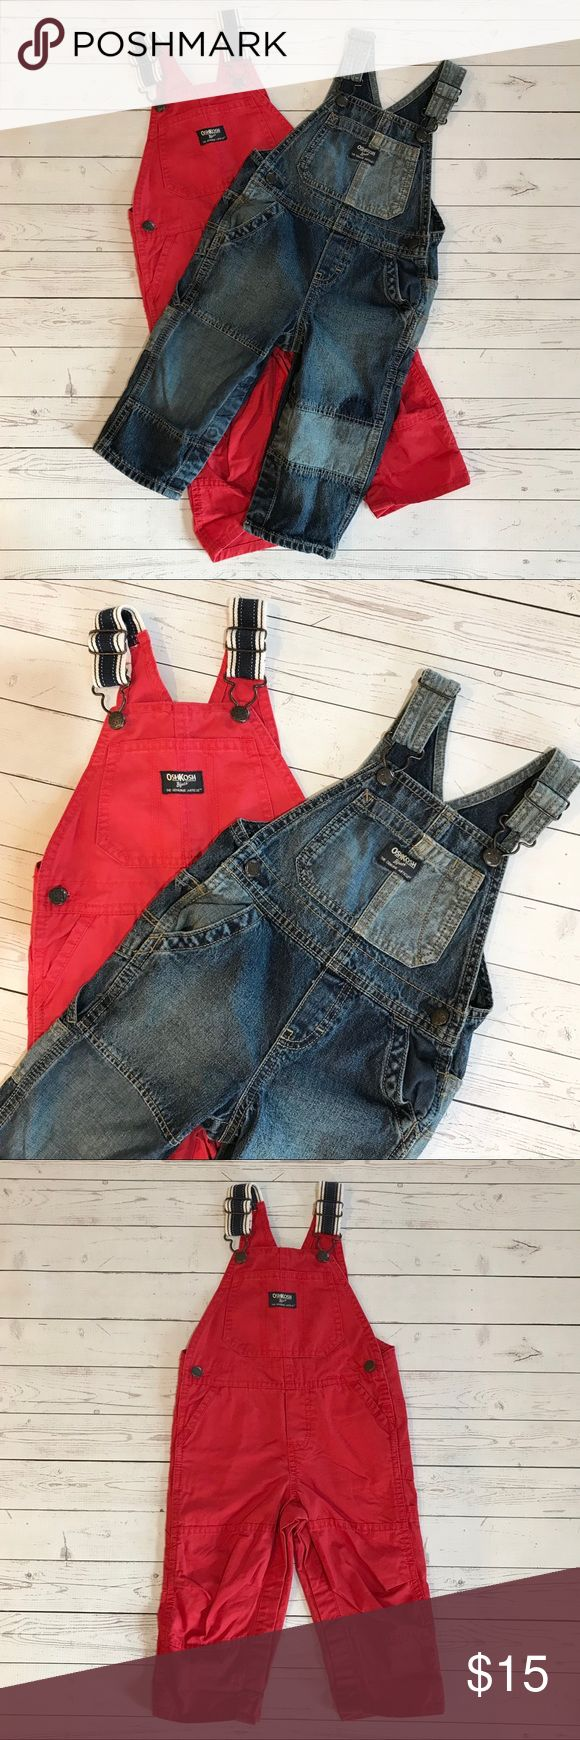 NWOT Osh Kosh lot of two toddler overalls These were purchased new, washed once, and never worn!  Size 18M.  Red overalls have navy/ivory straps and denim overalls have cute faux patchwork/distress detailing.  Super adorable!  Listing is for both items! Osh Kosh Bottoms Overalls